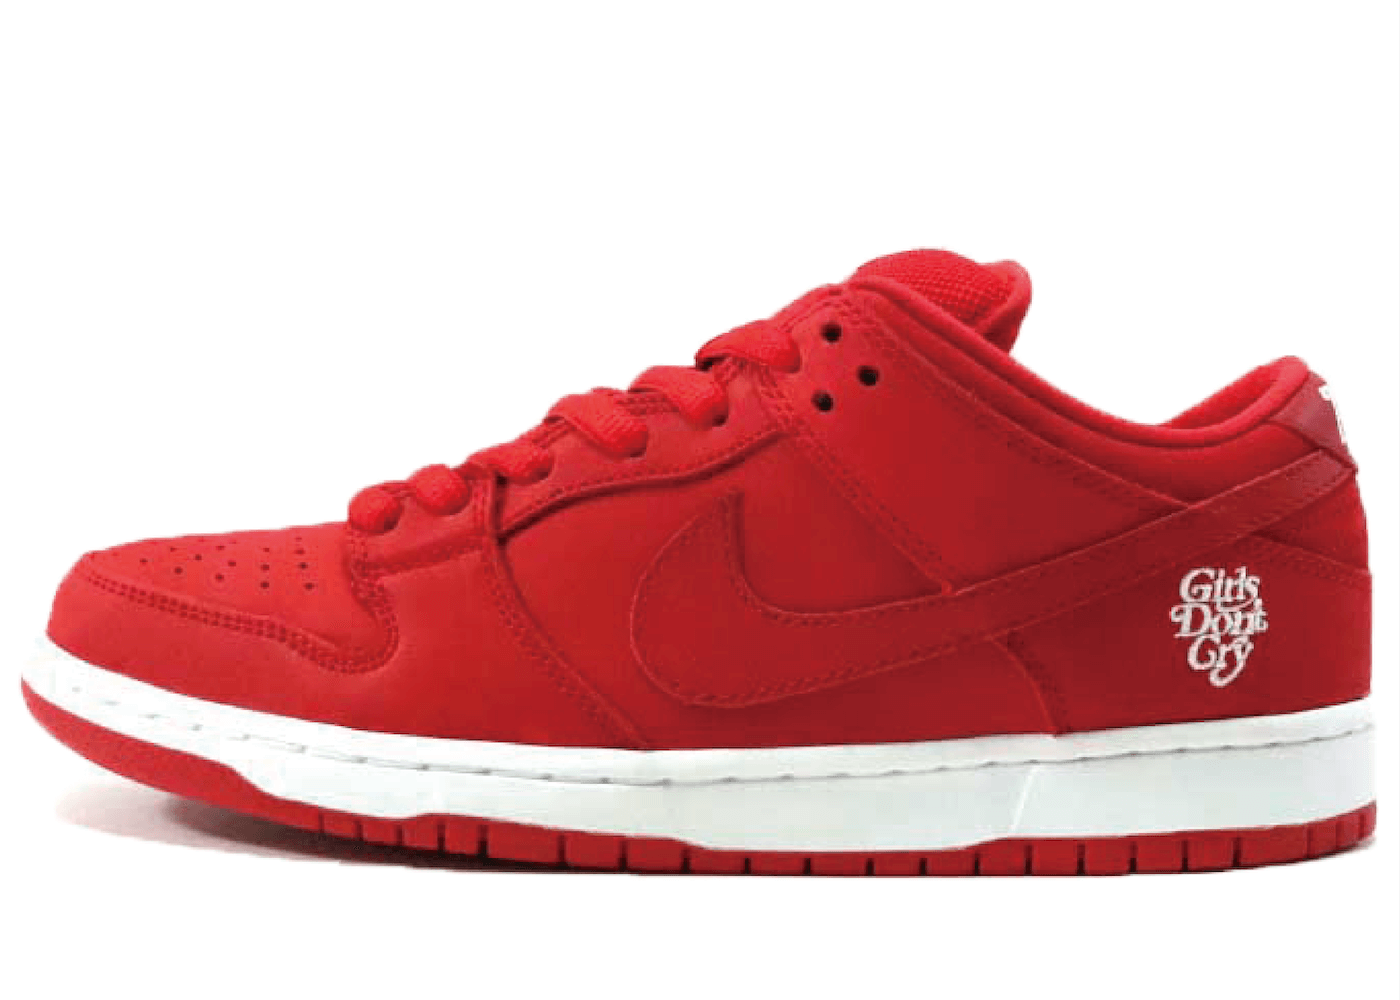 Nike SB Dunk Low Girls Don't Cryの写真